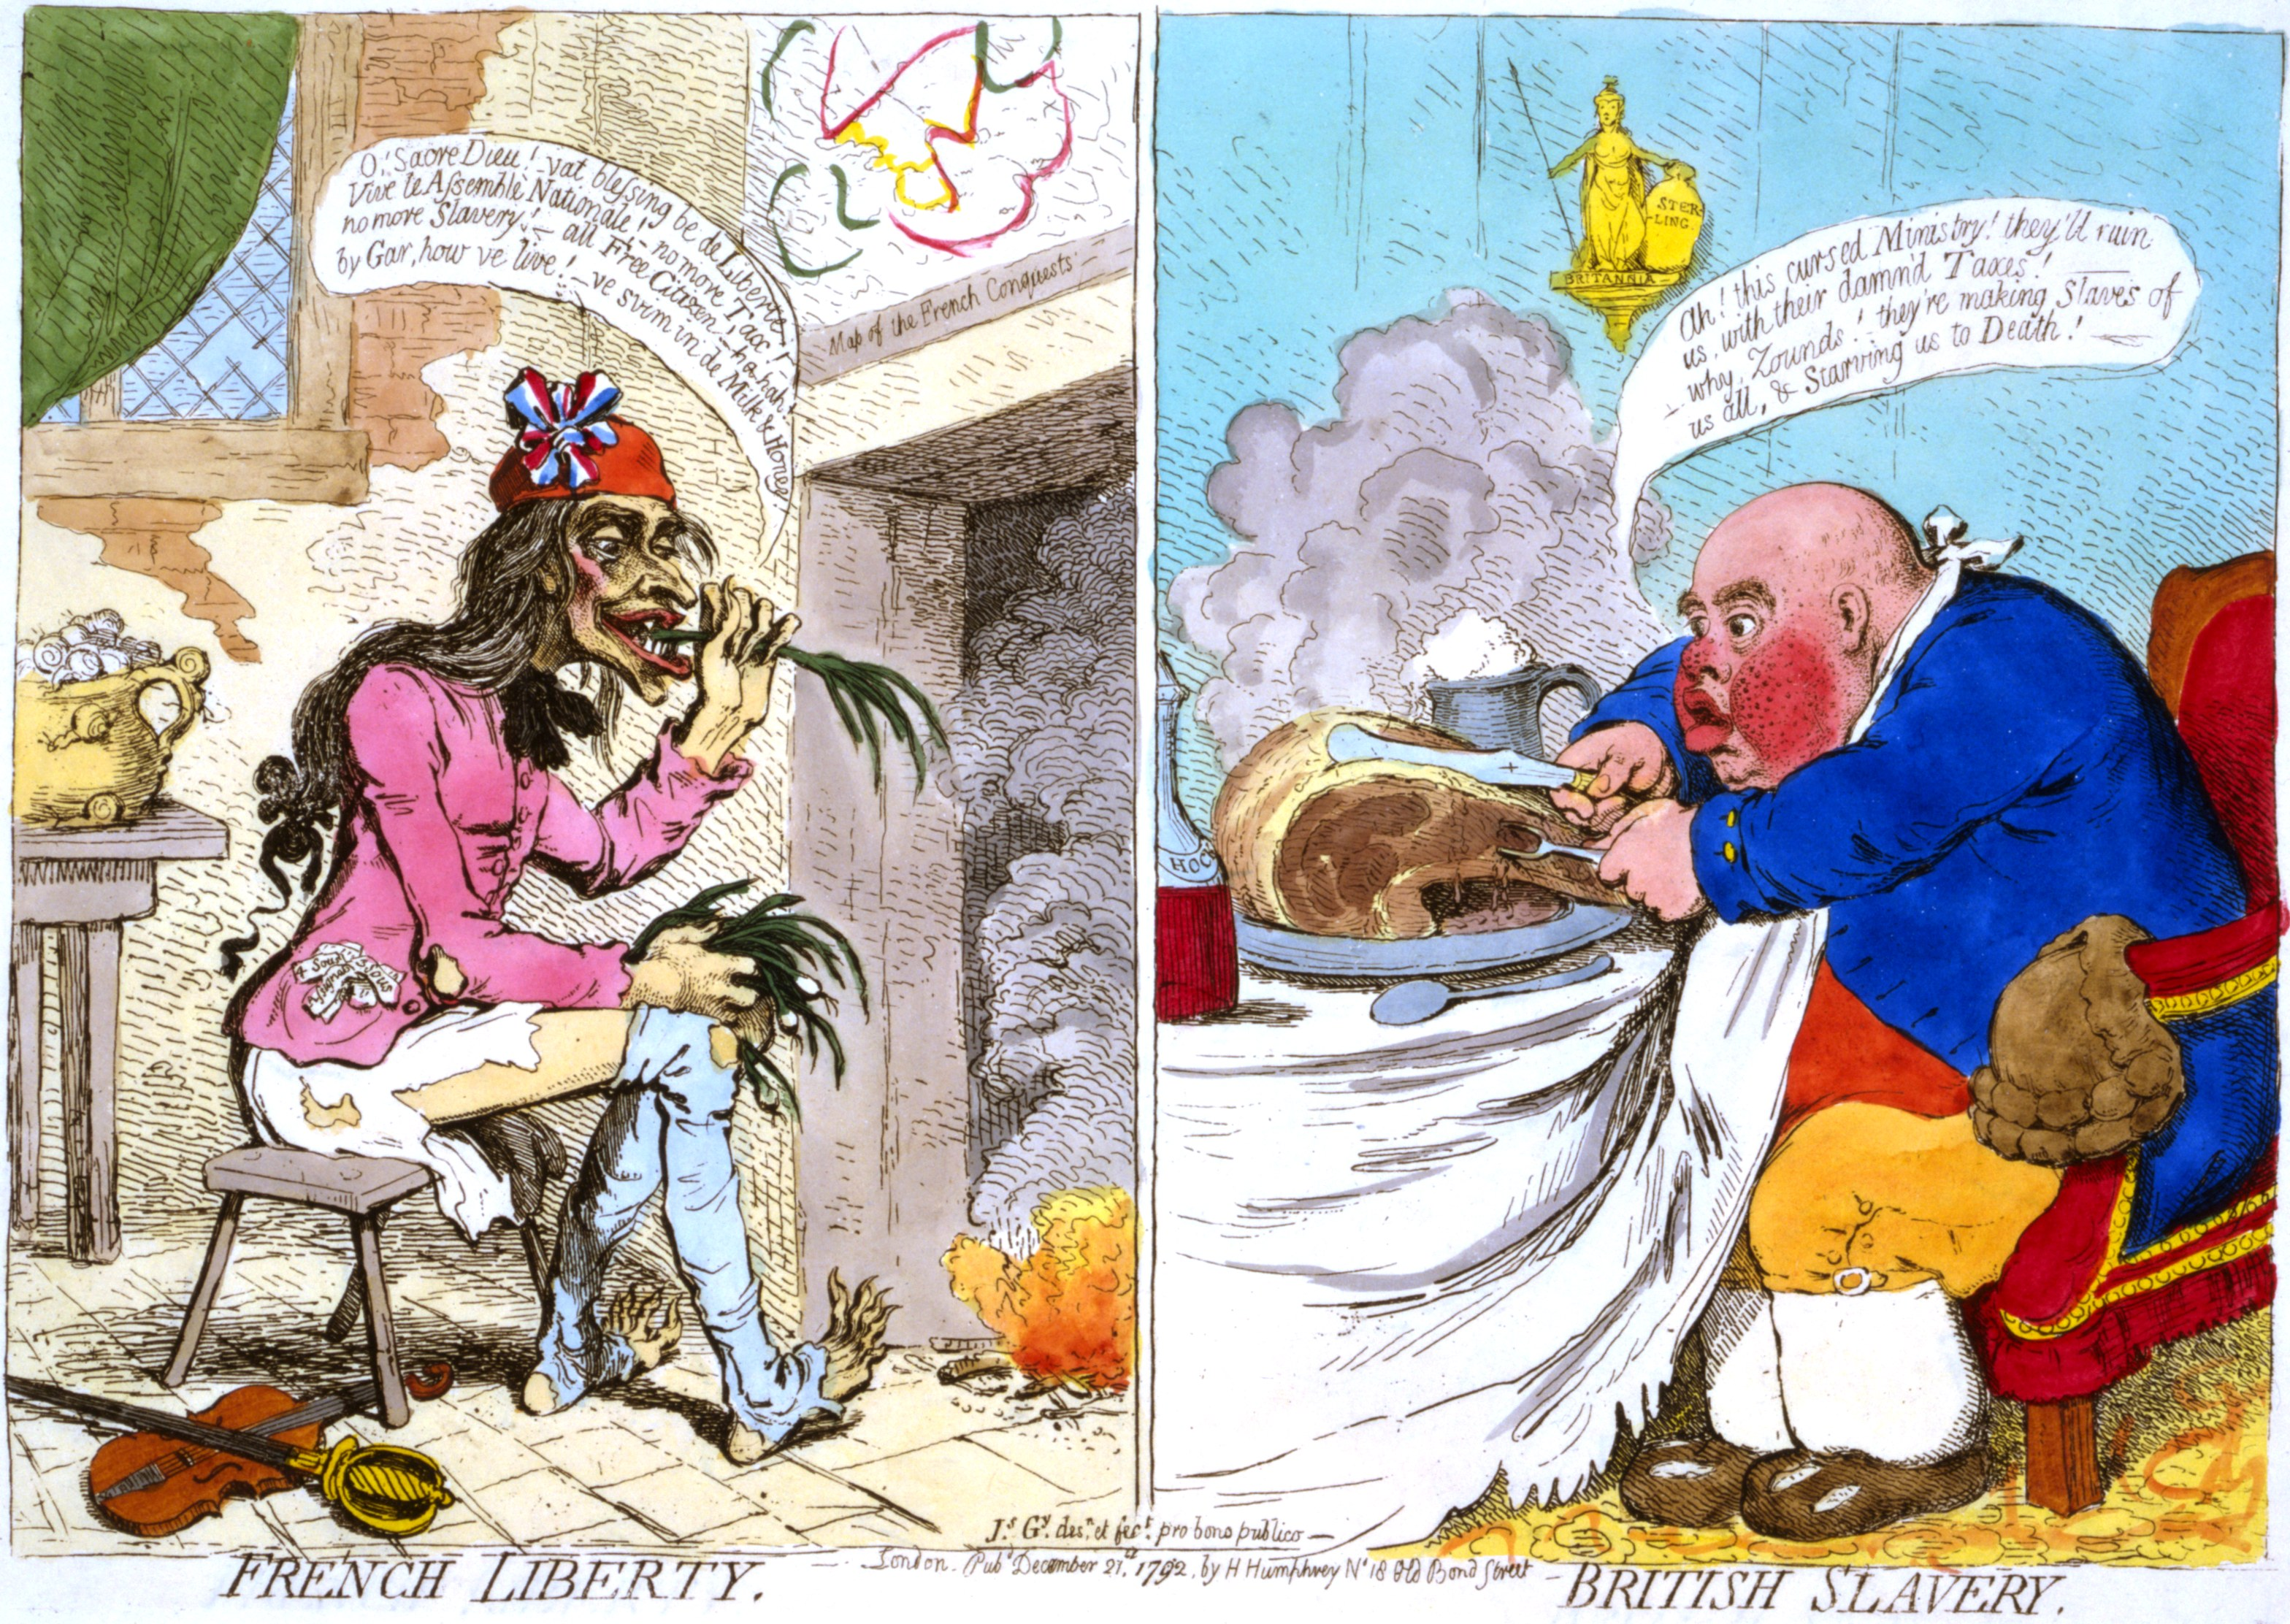 Killer Animals 201618130 furthermore File French Liberty British Slavery Gillray together with 5691f8b4d51e0373bbe00822 further The 5s Process Visualization moreover Scissor Kicks. on lean cartoon